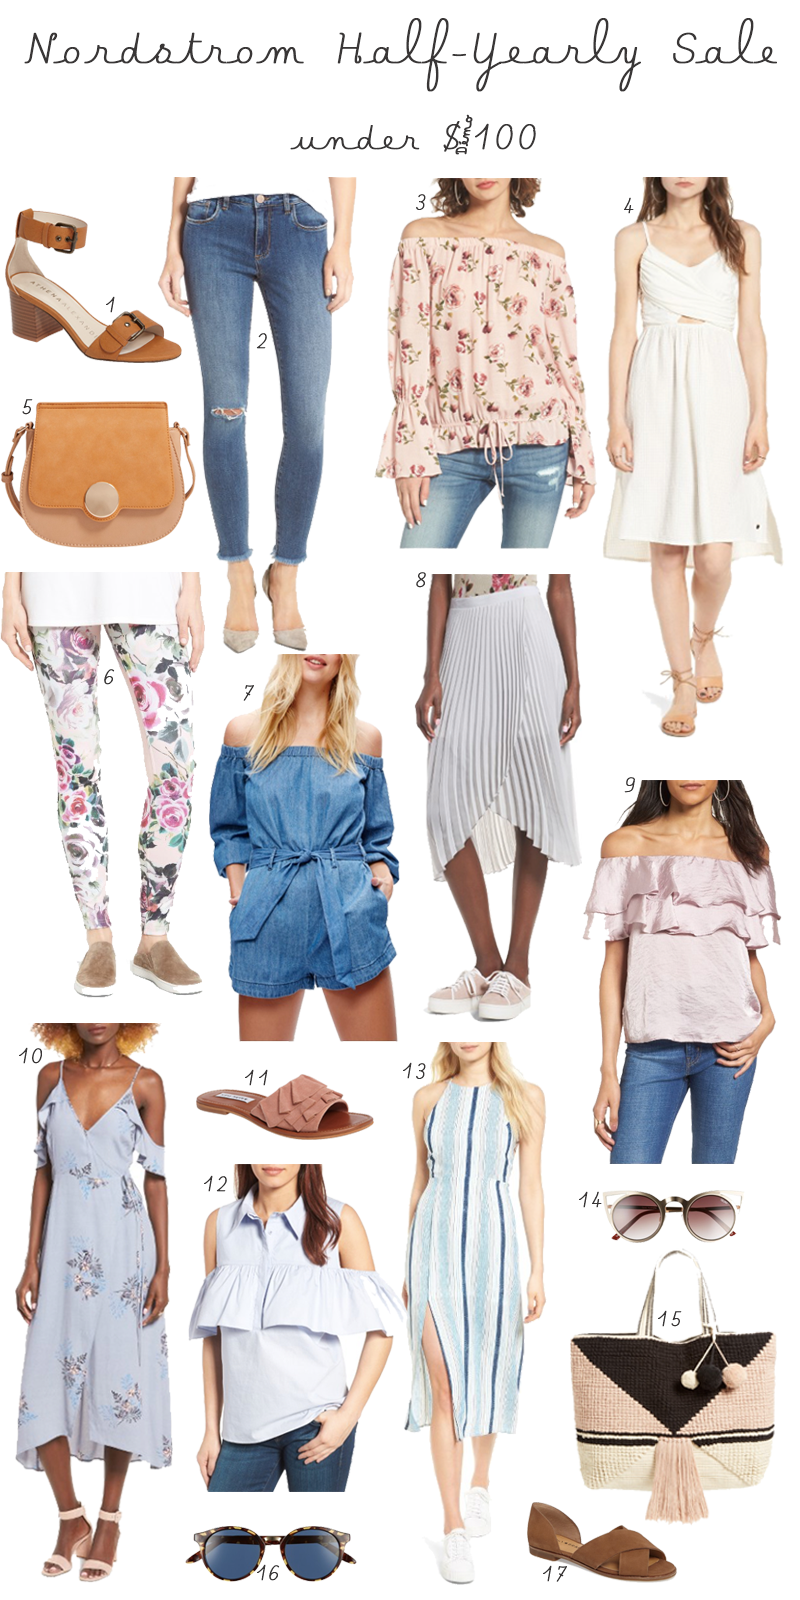 Nordstrom Half Year Sale for under $100